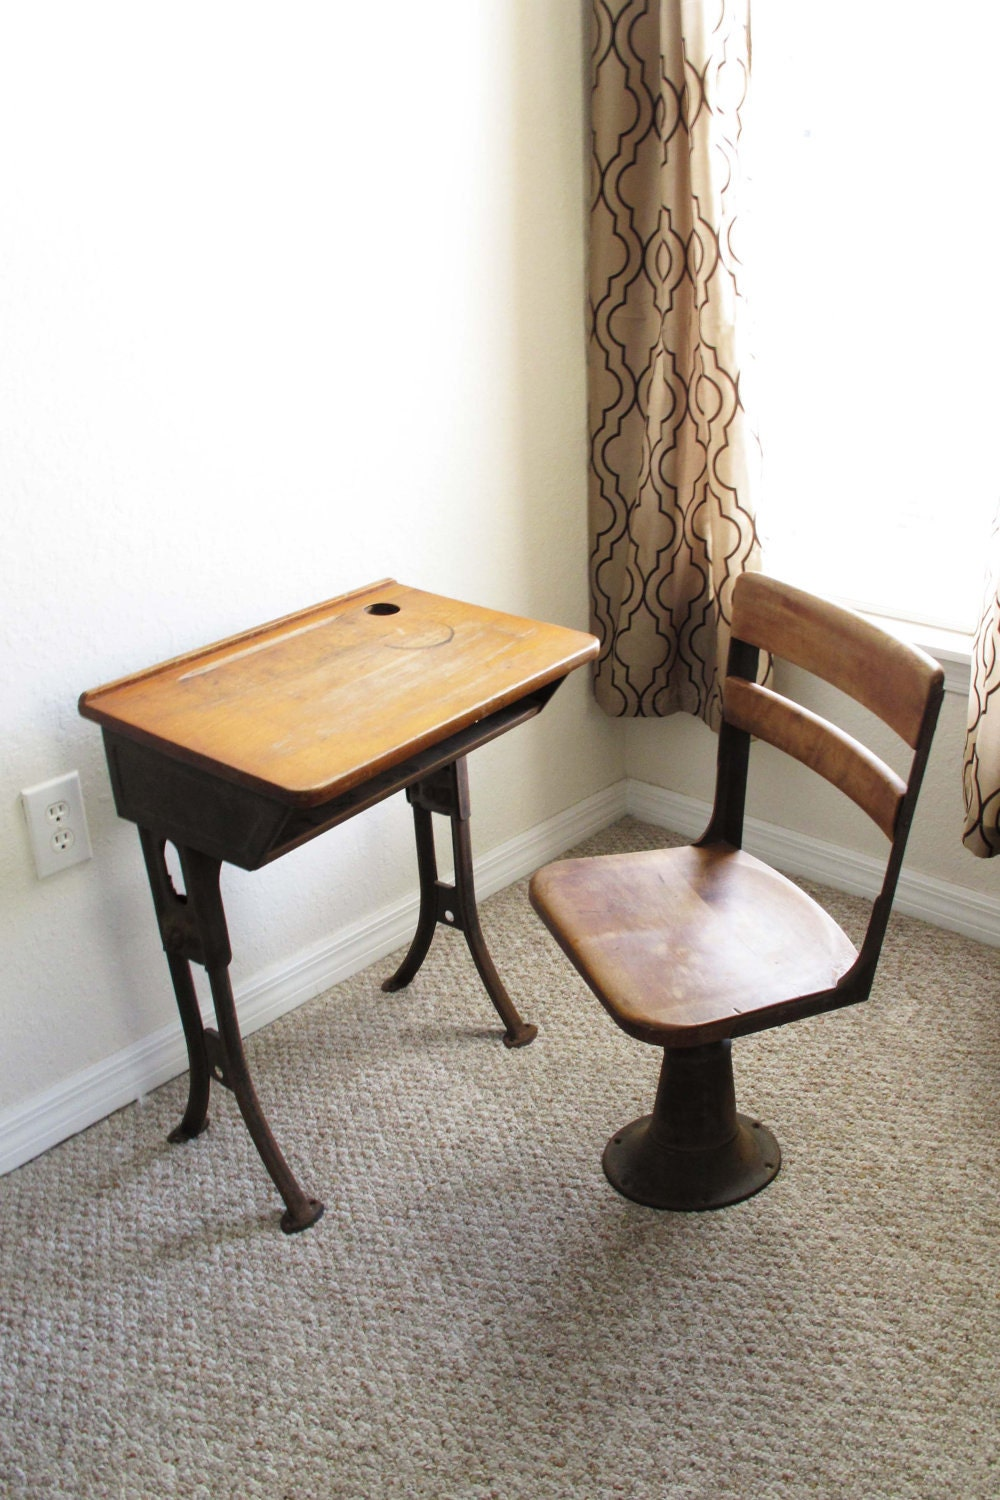 Sale antique school desk and chair for Desk chairs on sale